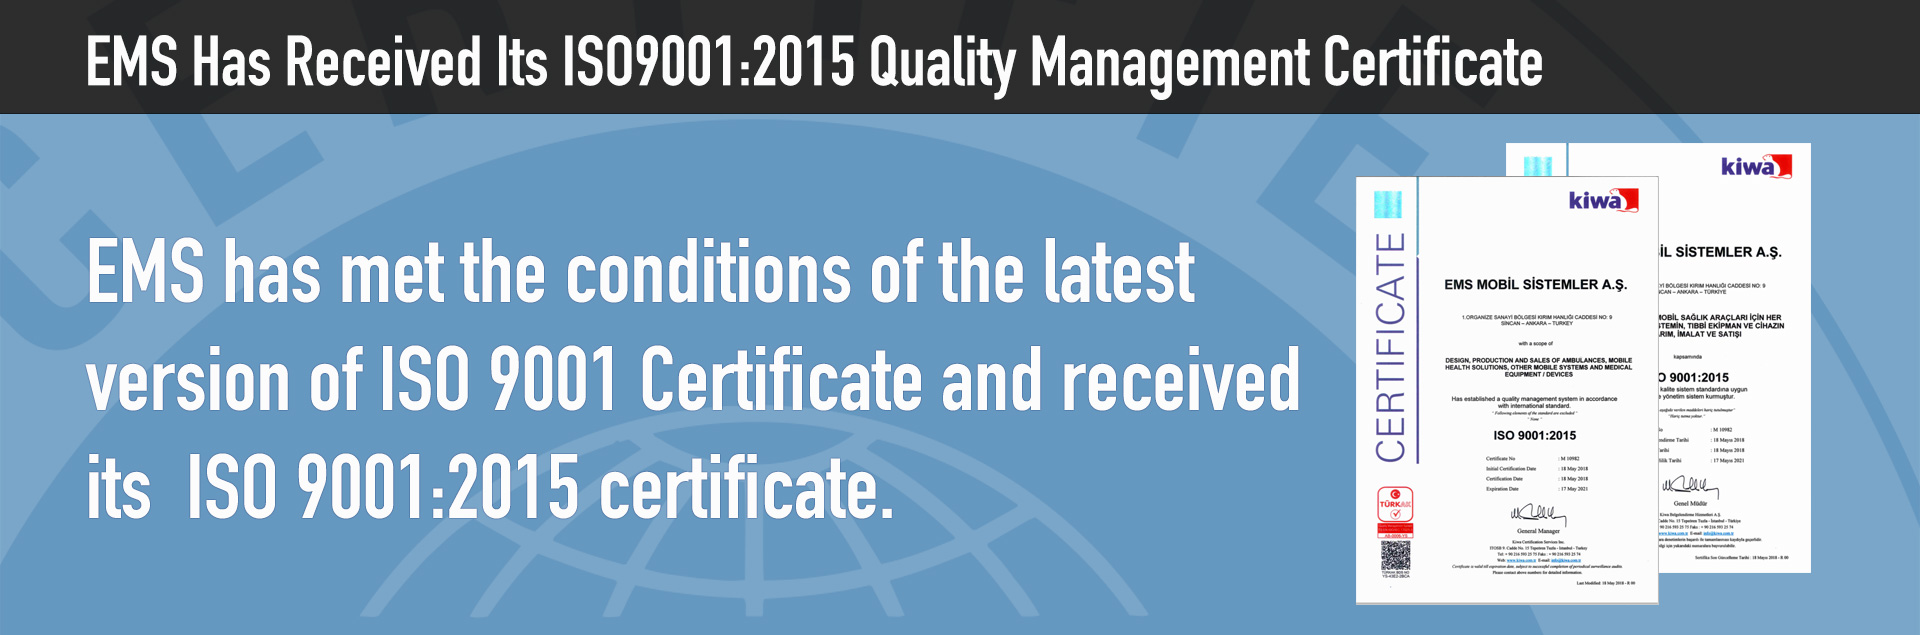 EMS Has Received Its ISO9001:2015 Quality Management Certificate